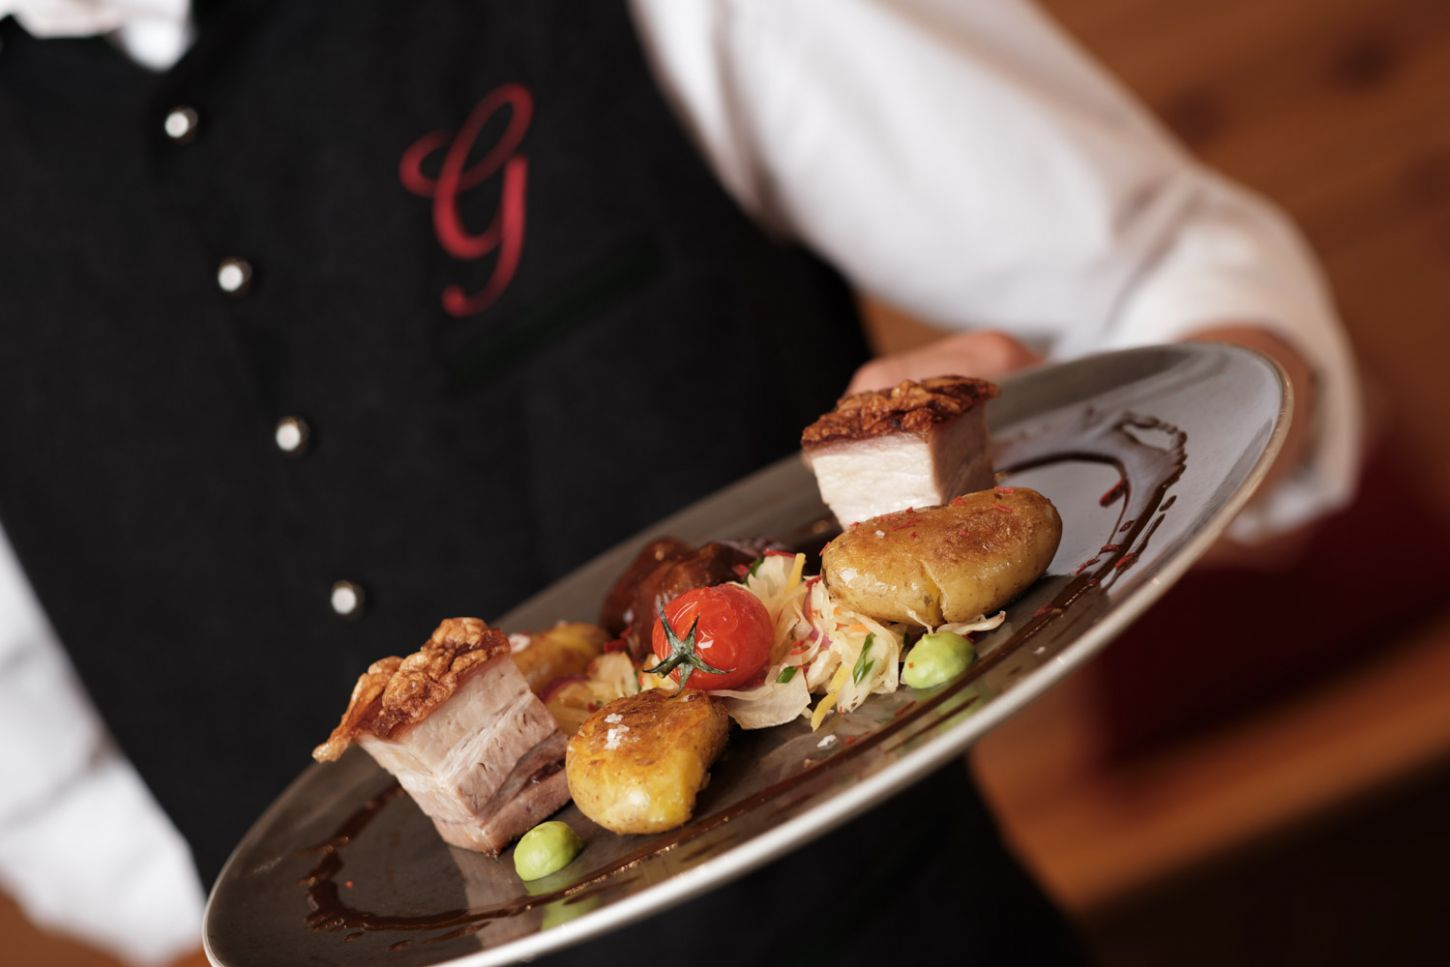 Culinary delights at the Hotel Gambswirt in Tamsweg - culinary delights for connoisseurs